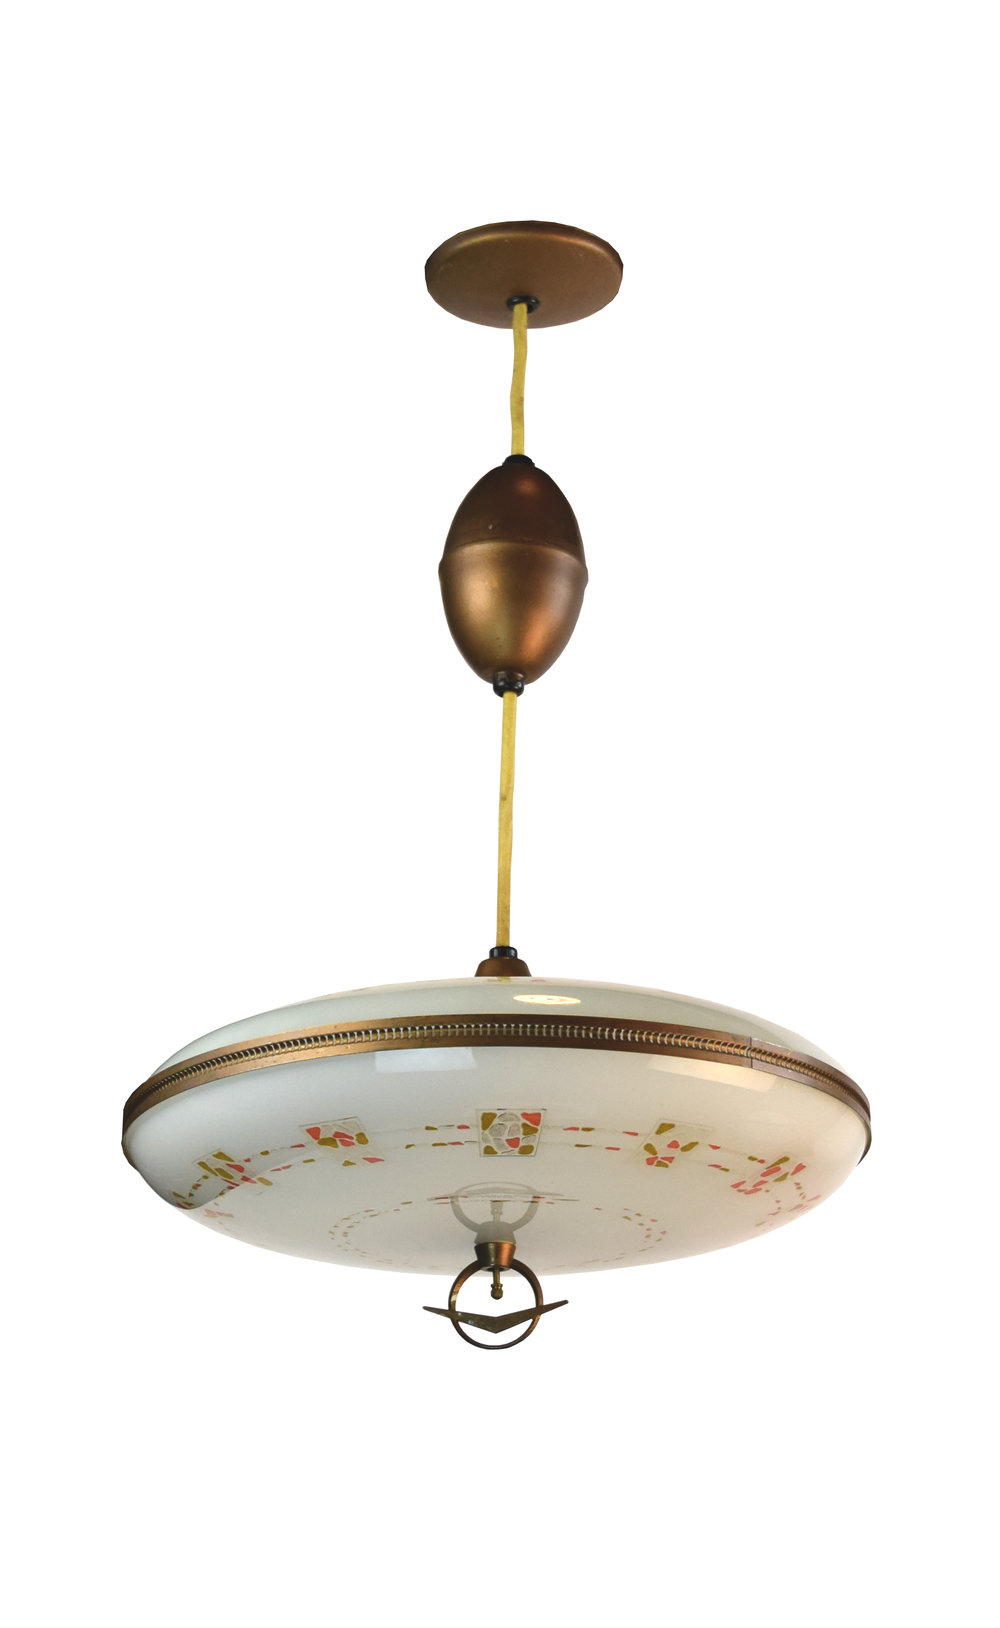 lightolier pendant with mosiac tile decor